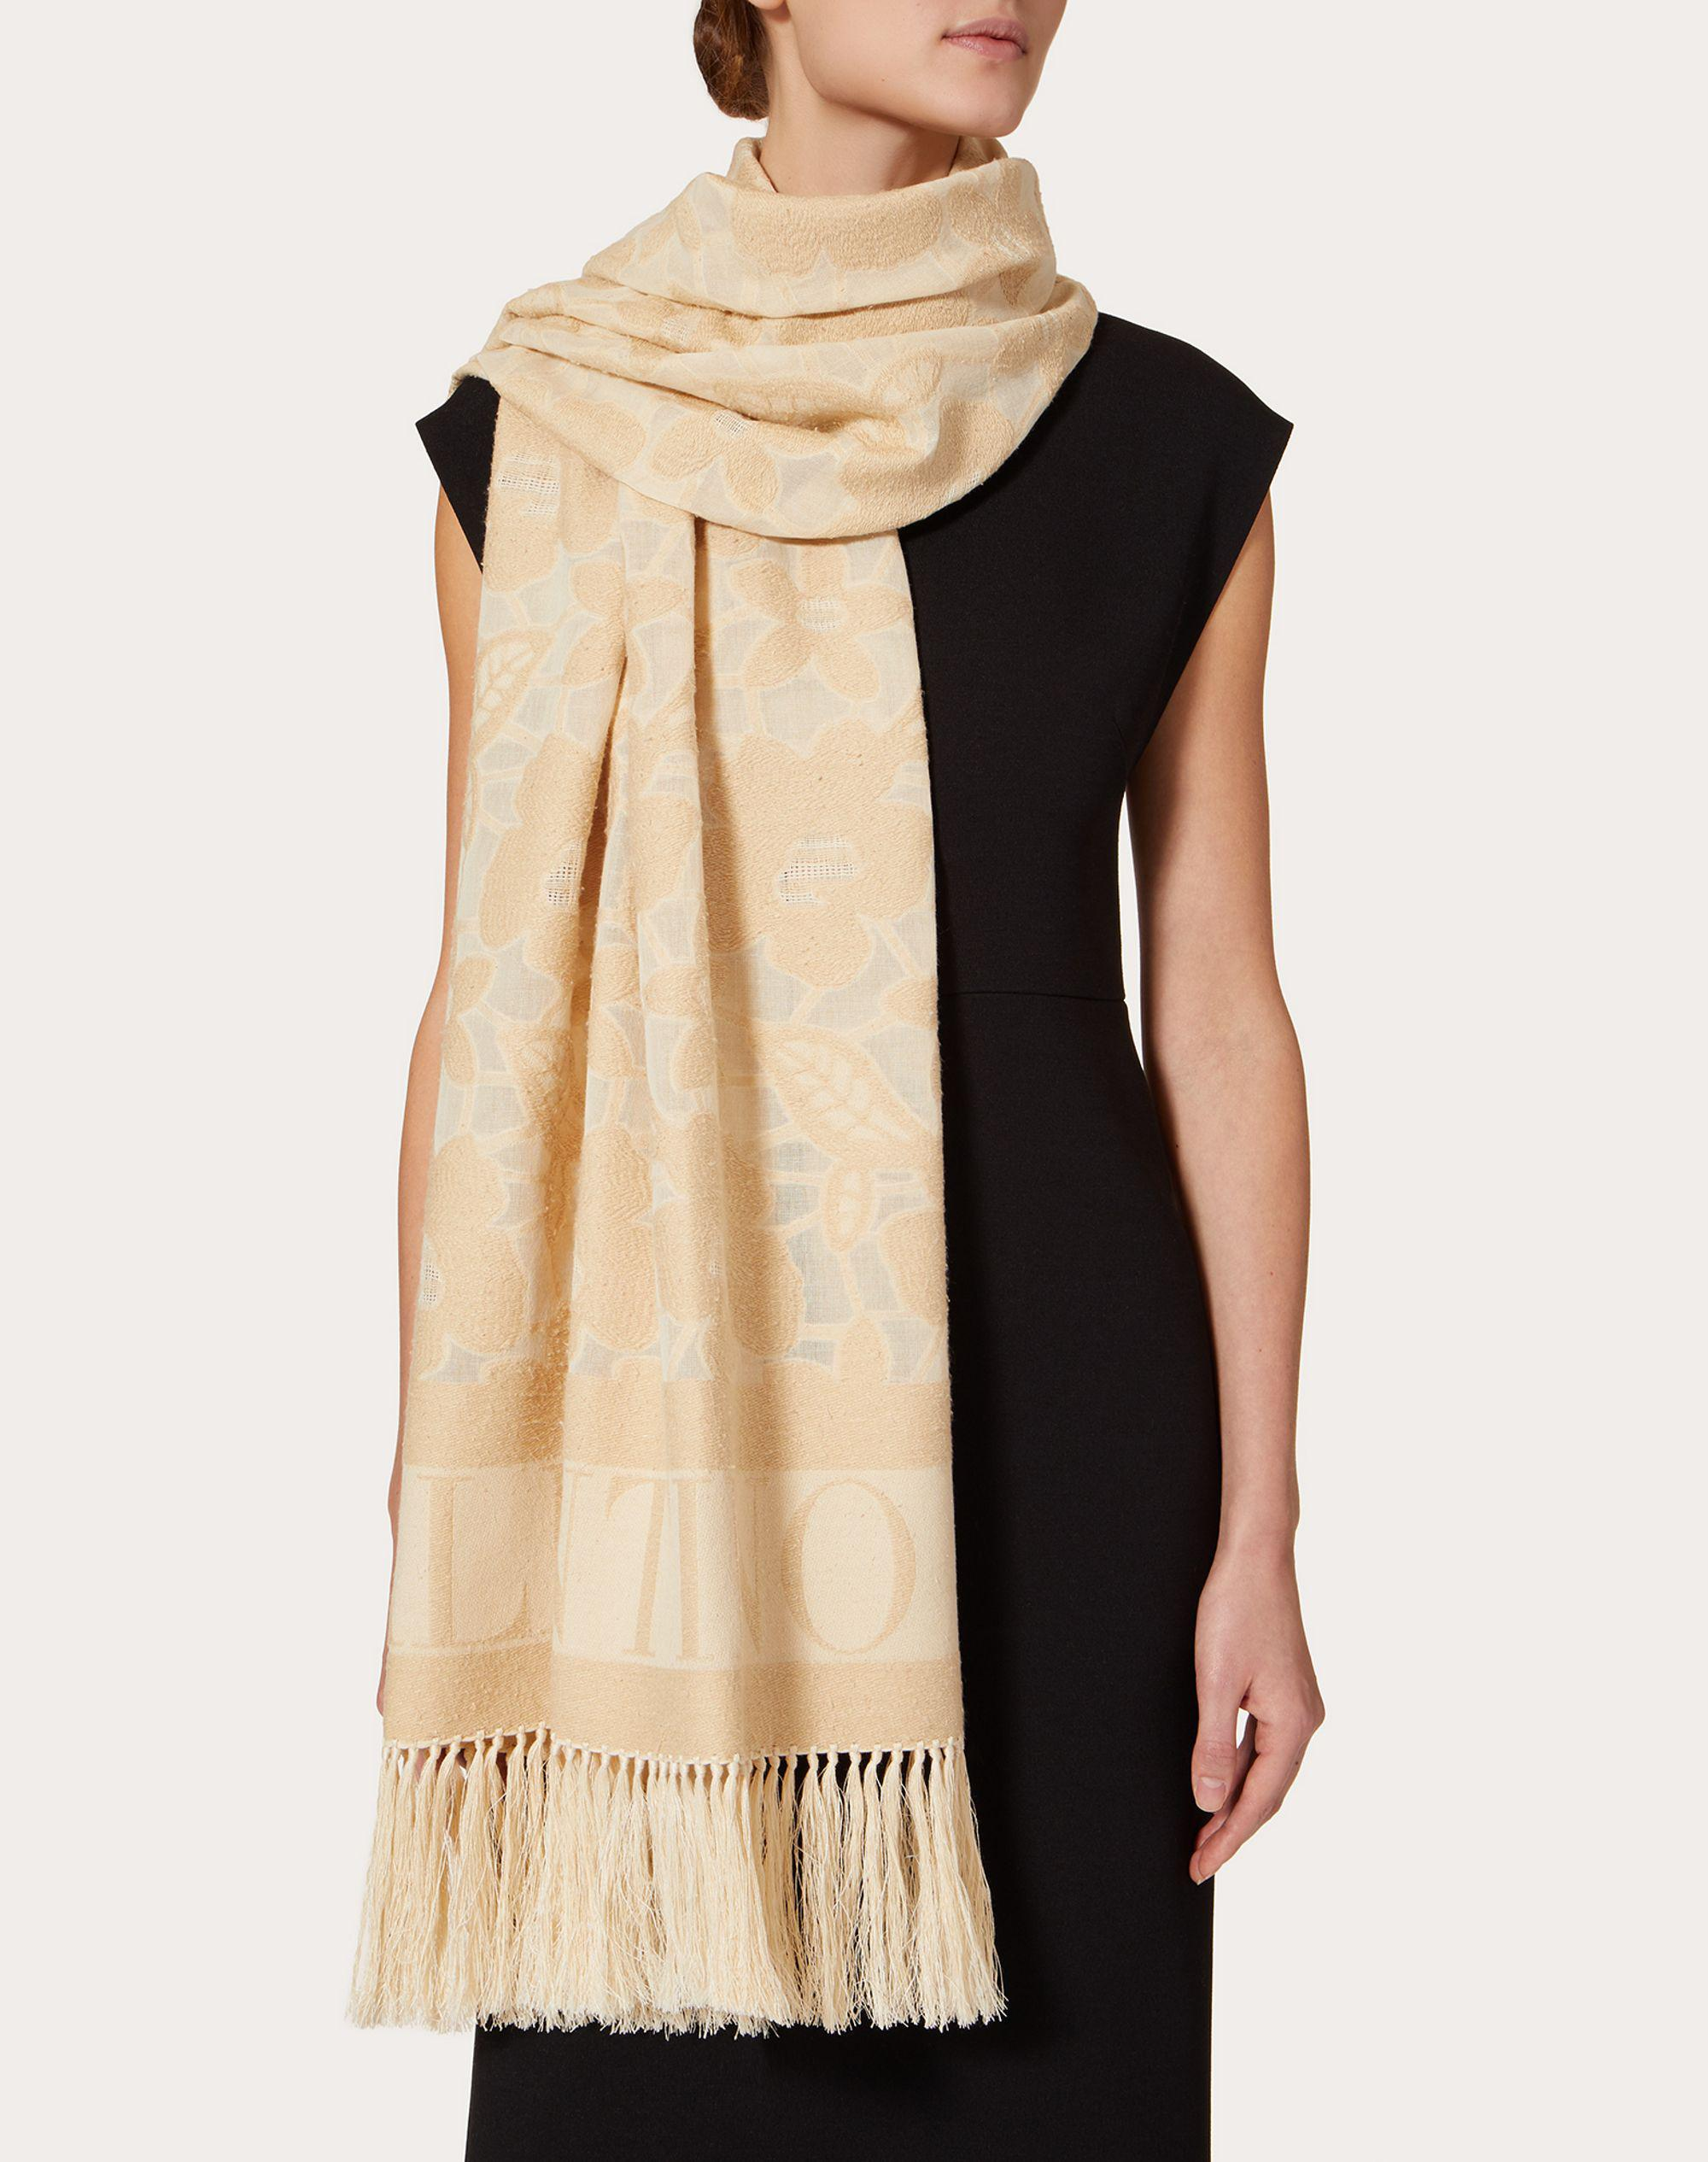 Cotton and silk stole with floral jacquard design 70x200 cm / 27.6x78.7 in. 3